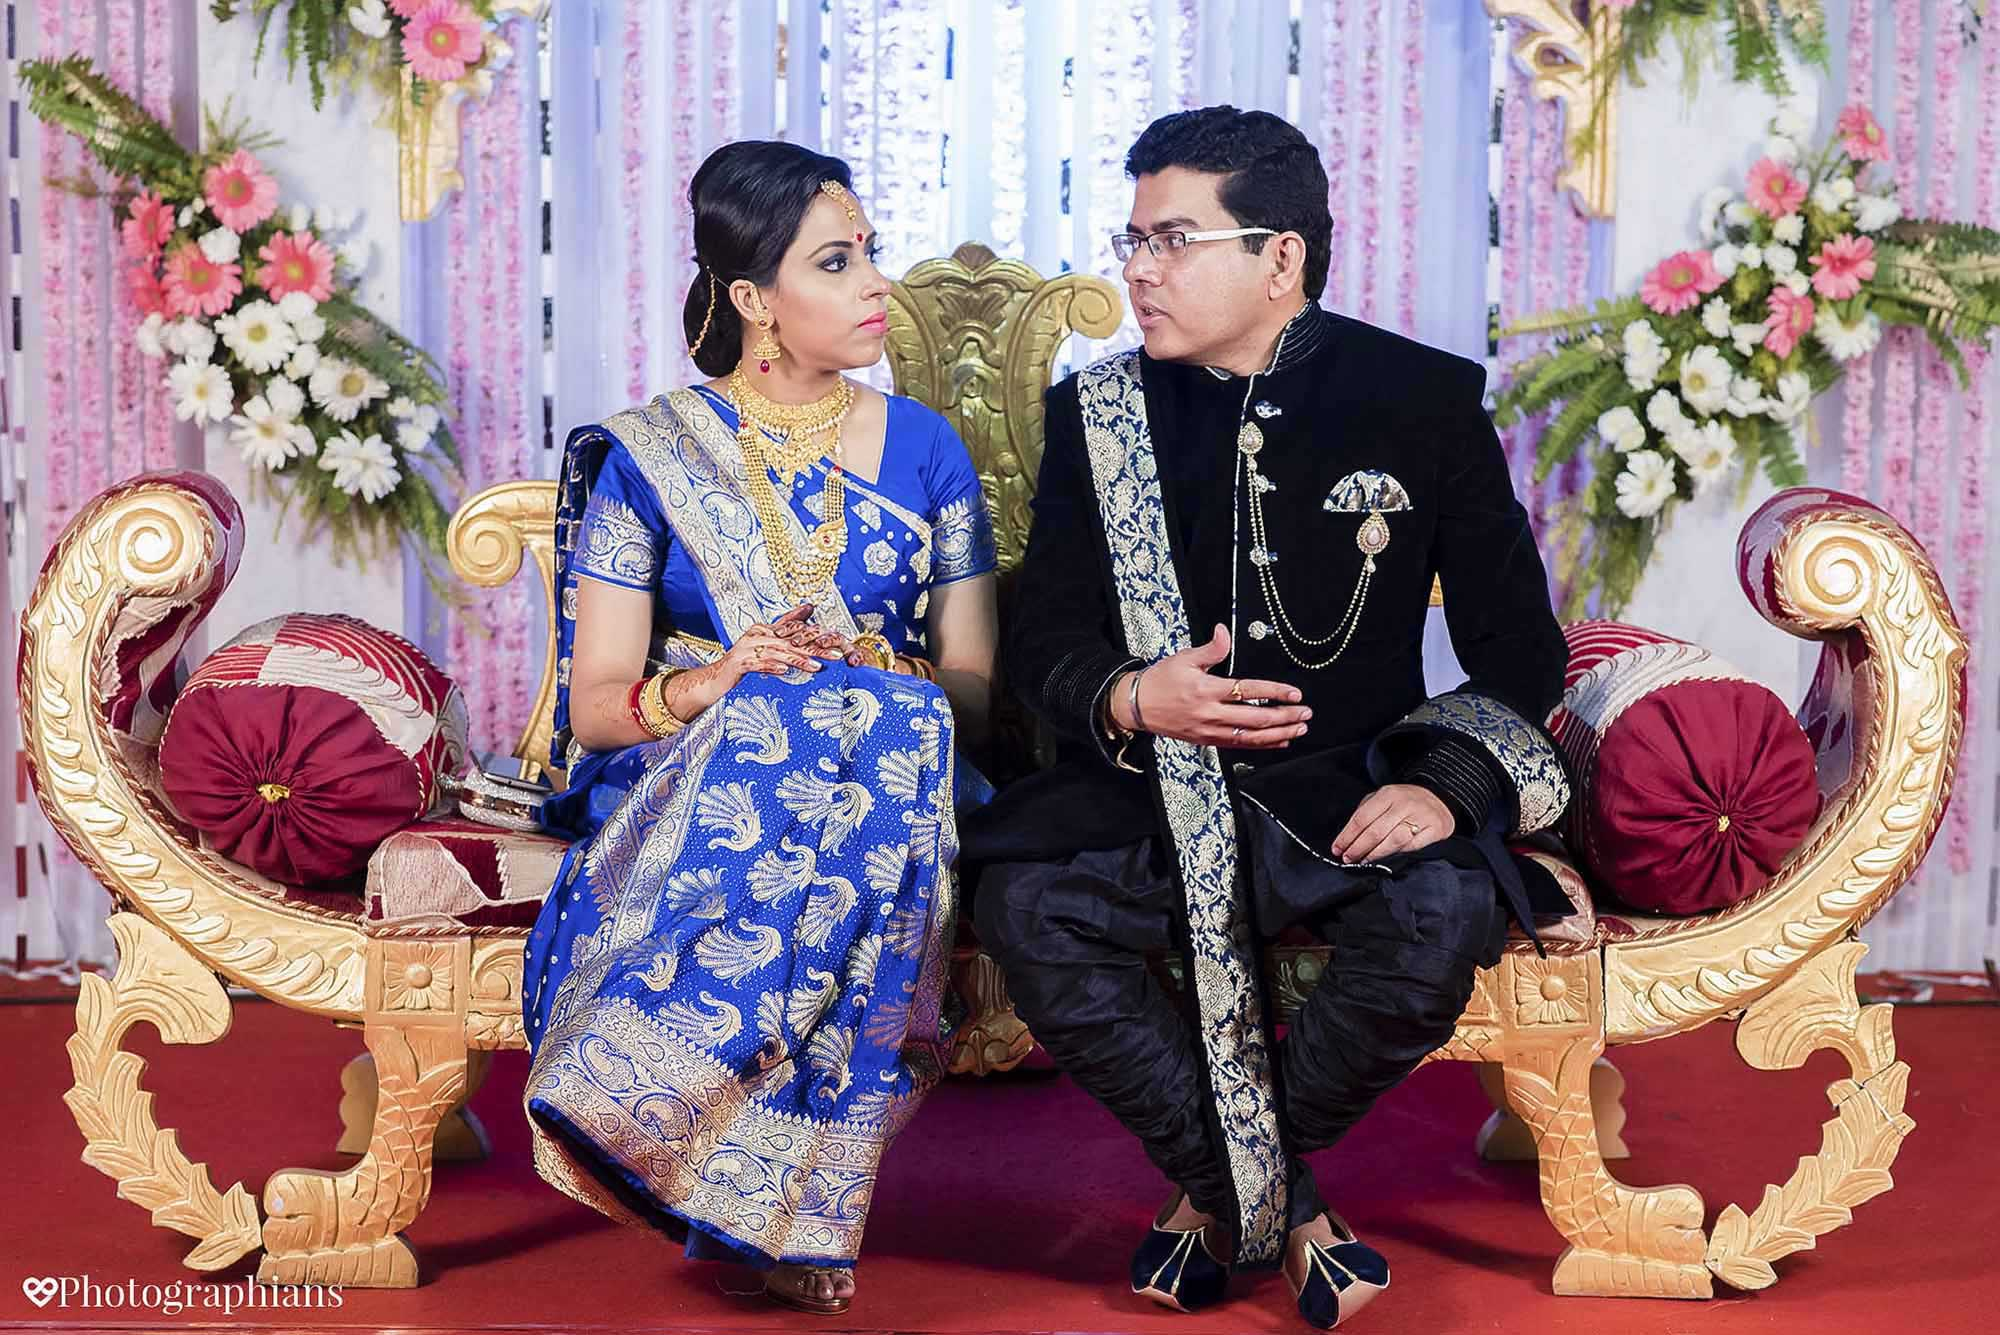 Bengali_Wedding_Photography_Kolkata_Photographians_200